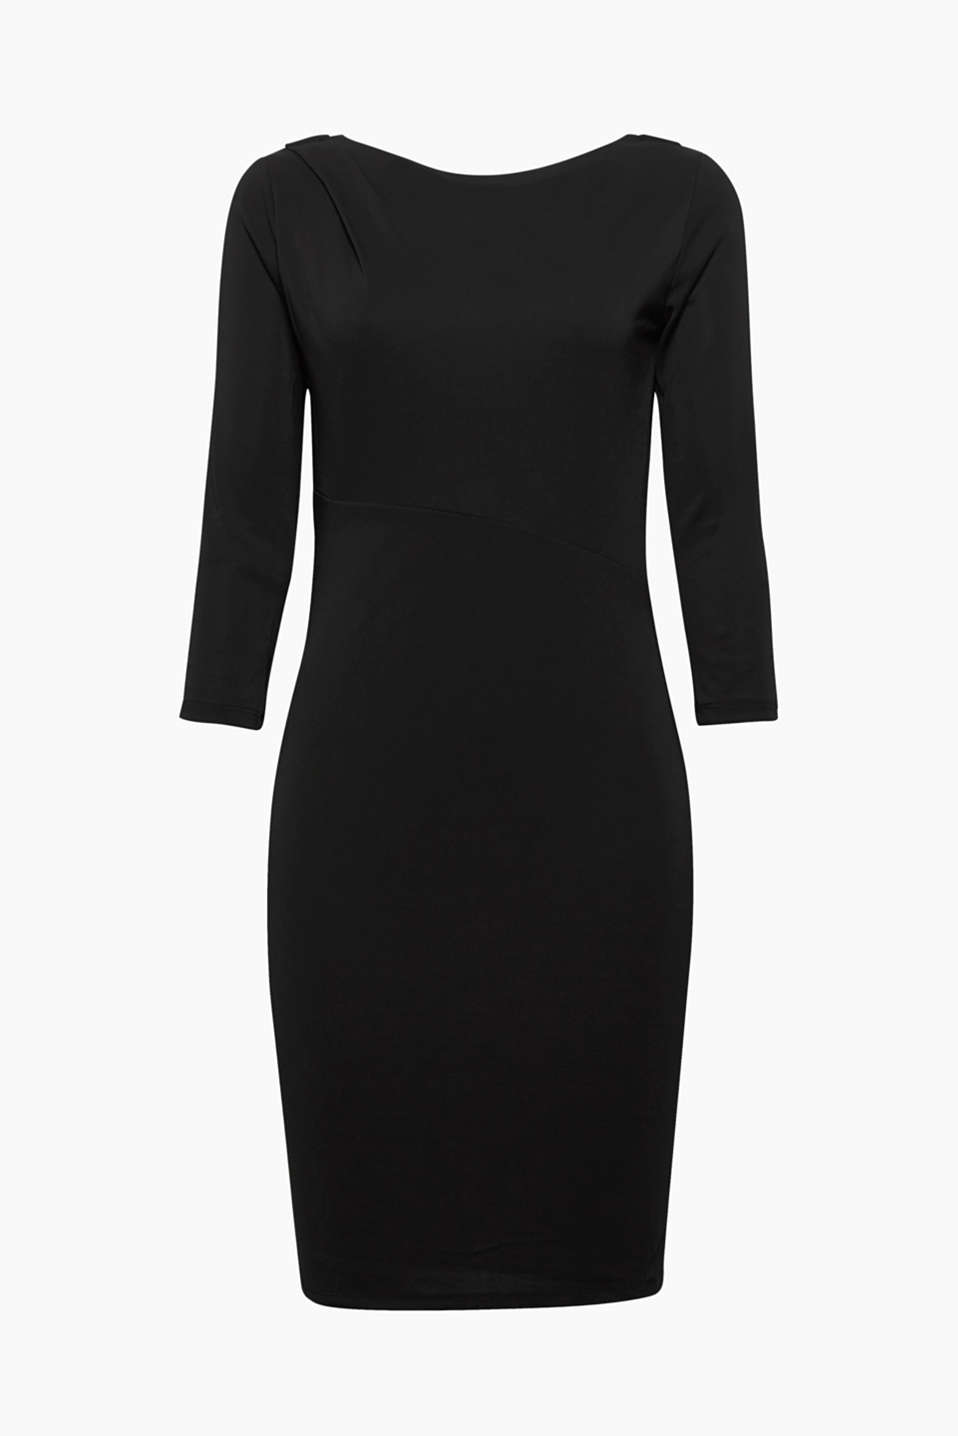 Flowing jersey, cowl neckline on the back – both features make this figure-defining dress so perfect!